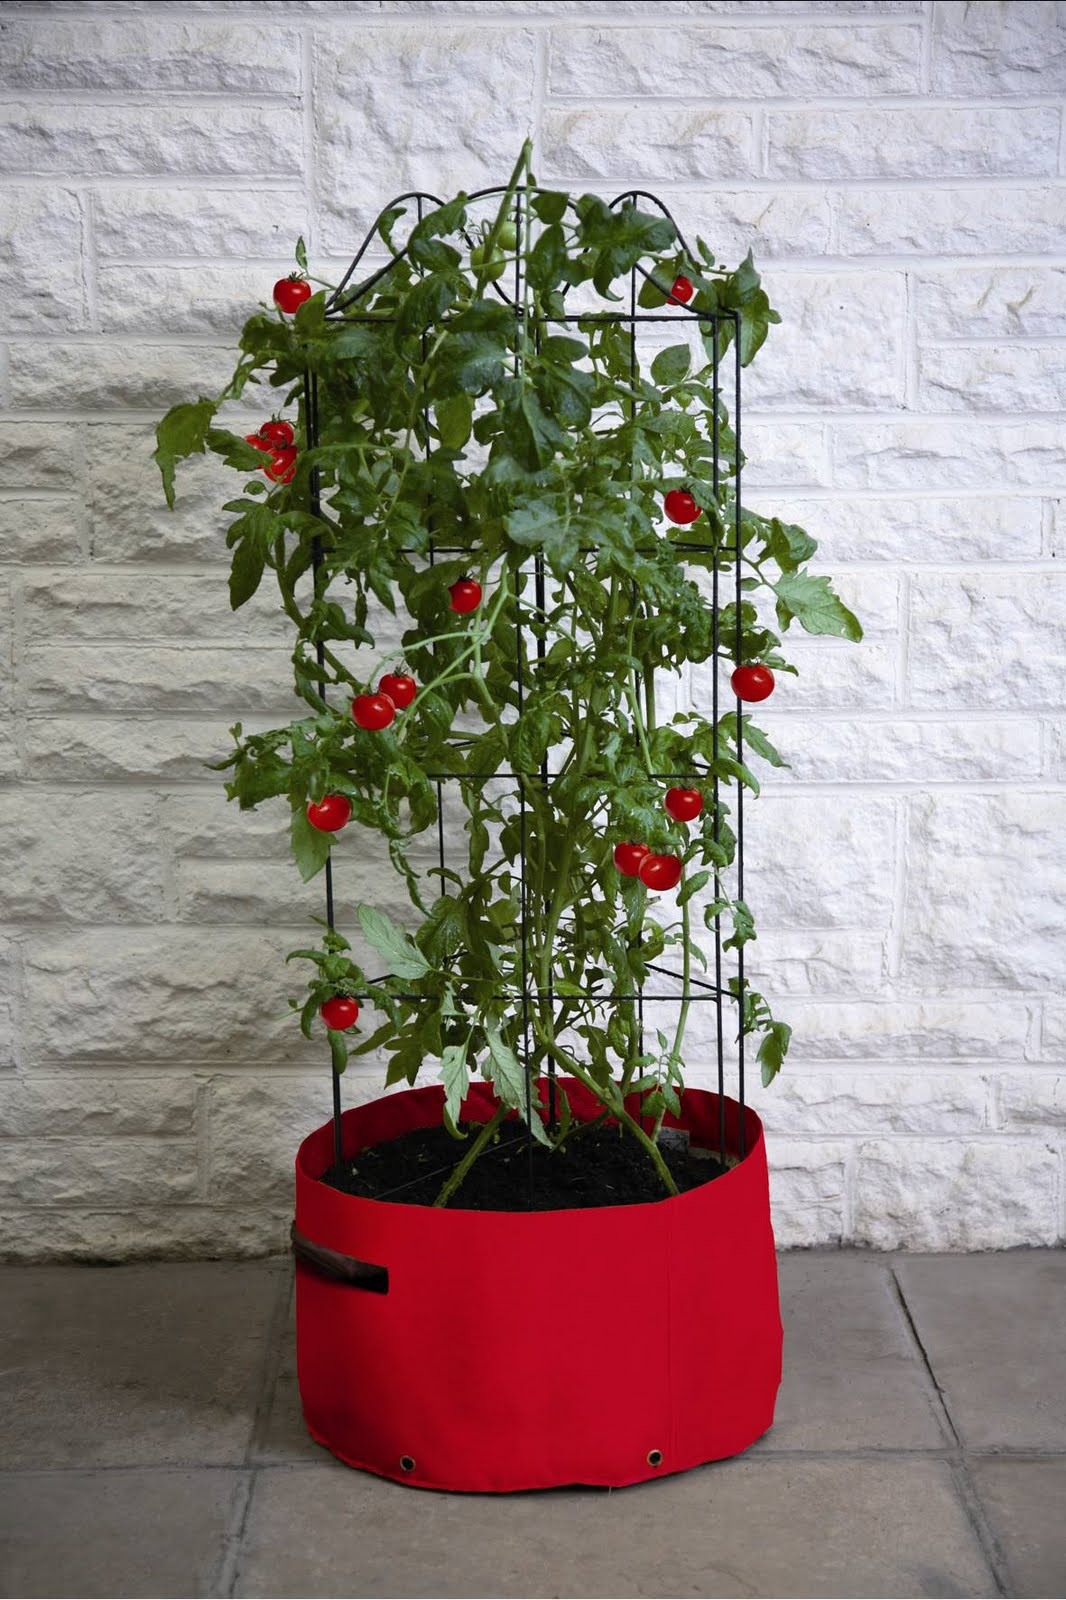 Growing Tomatoes in Patio Planters Tips - Haxnicks